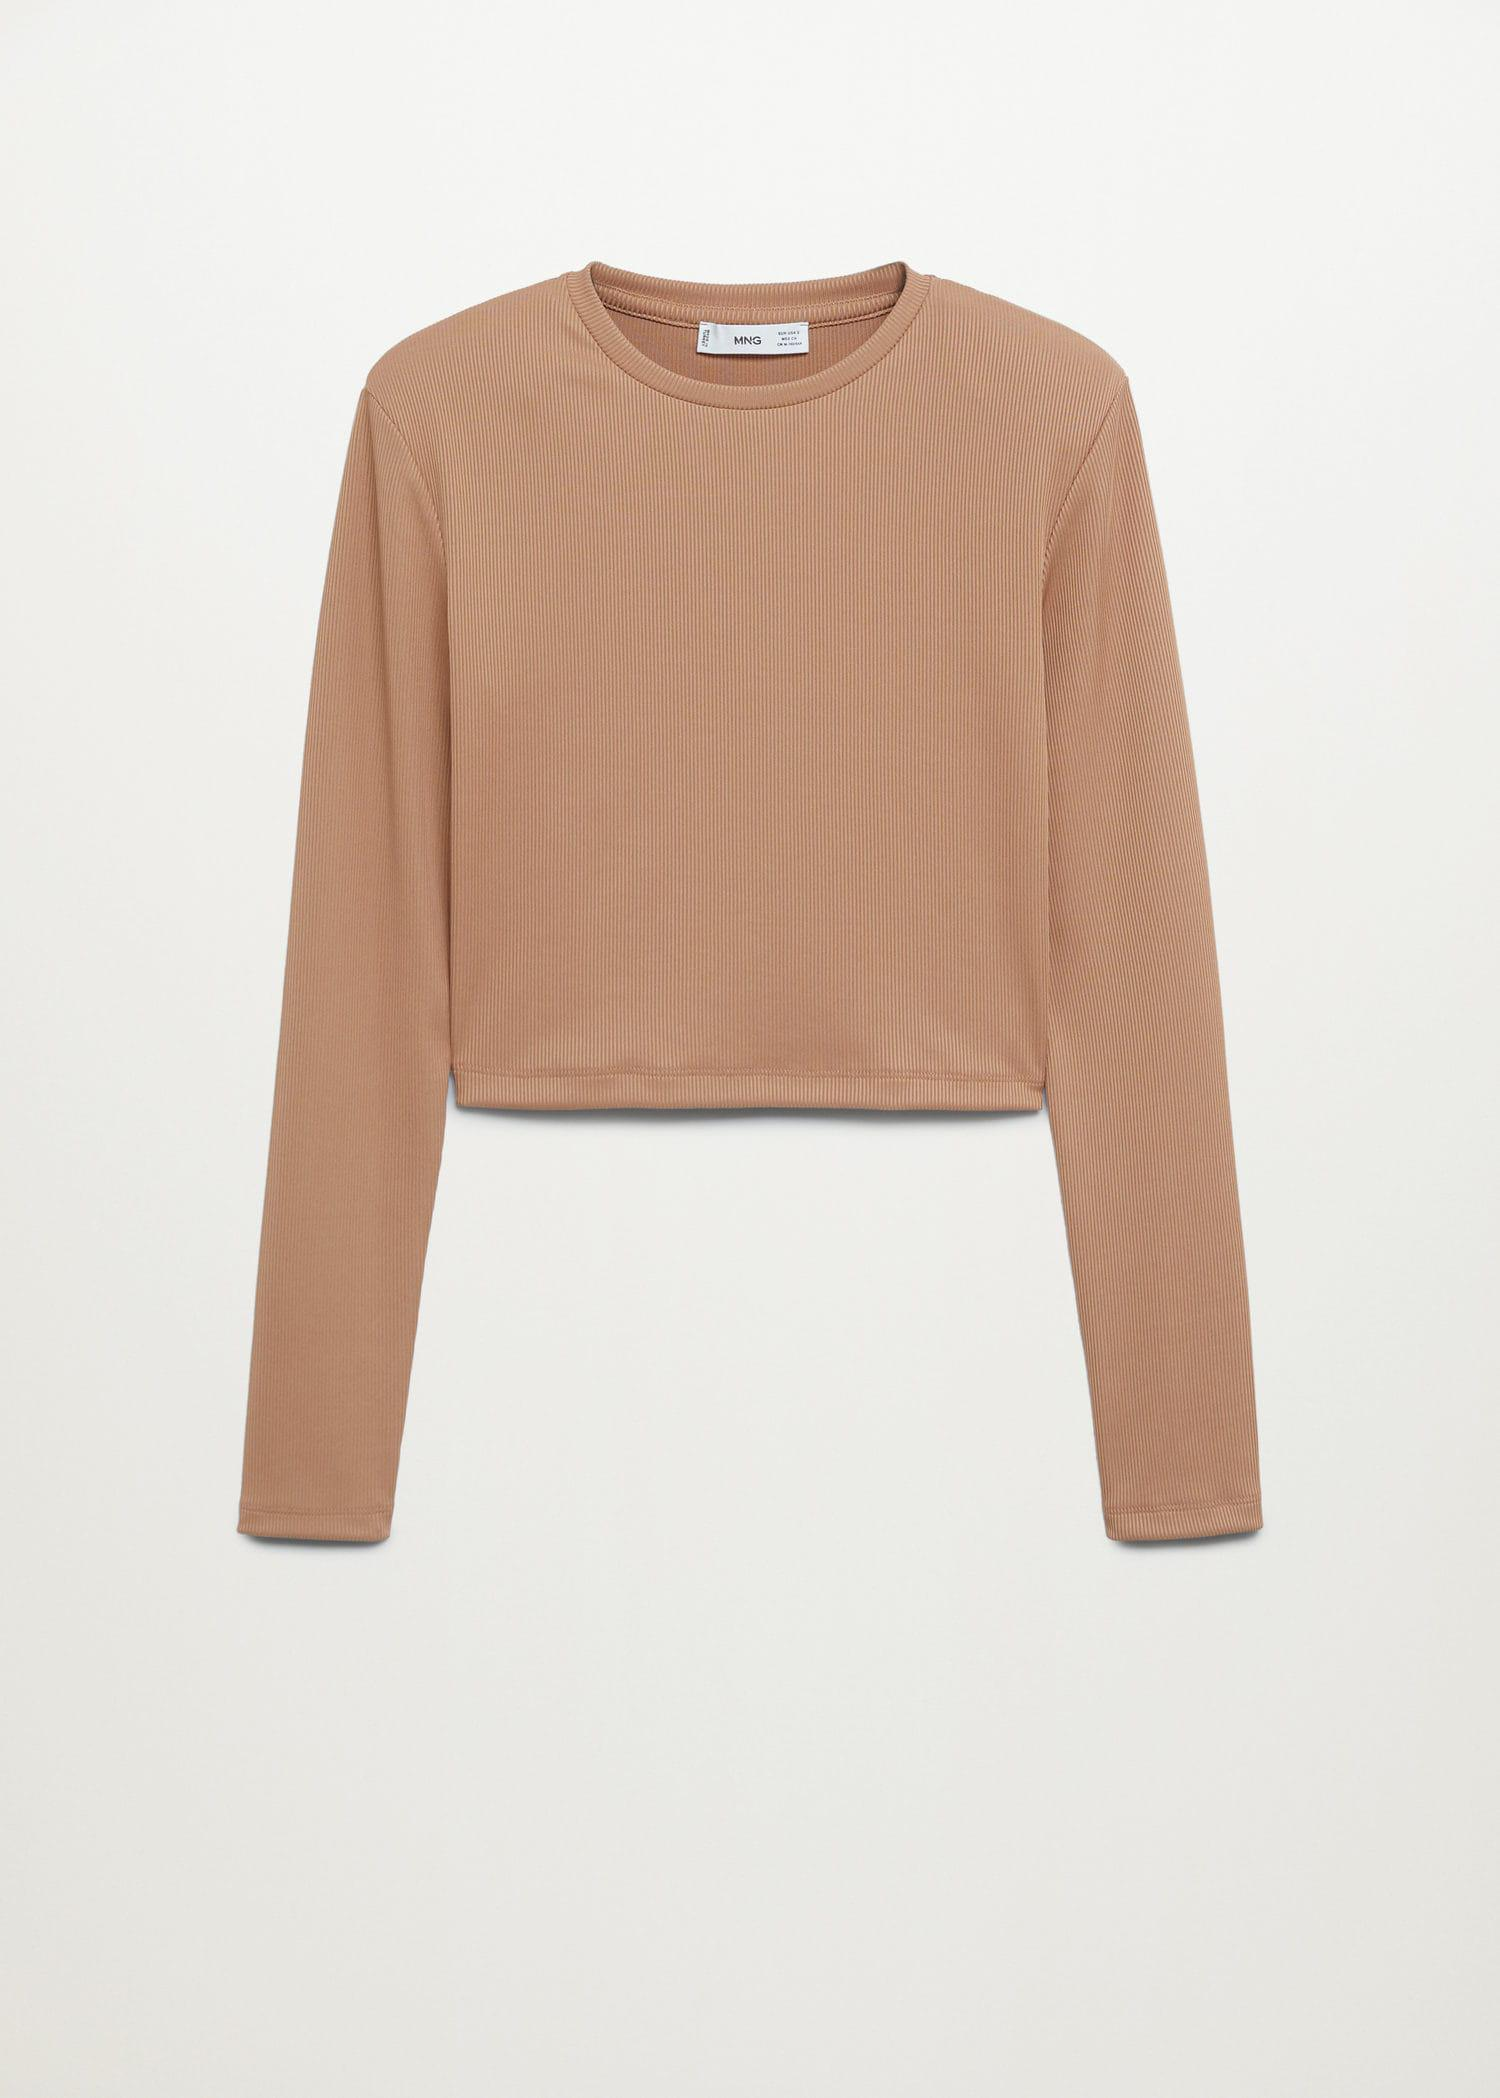 Long-sleeved cropped t-shirt 6